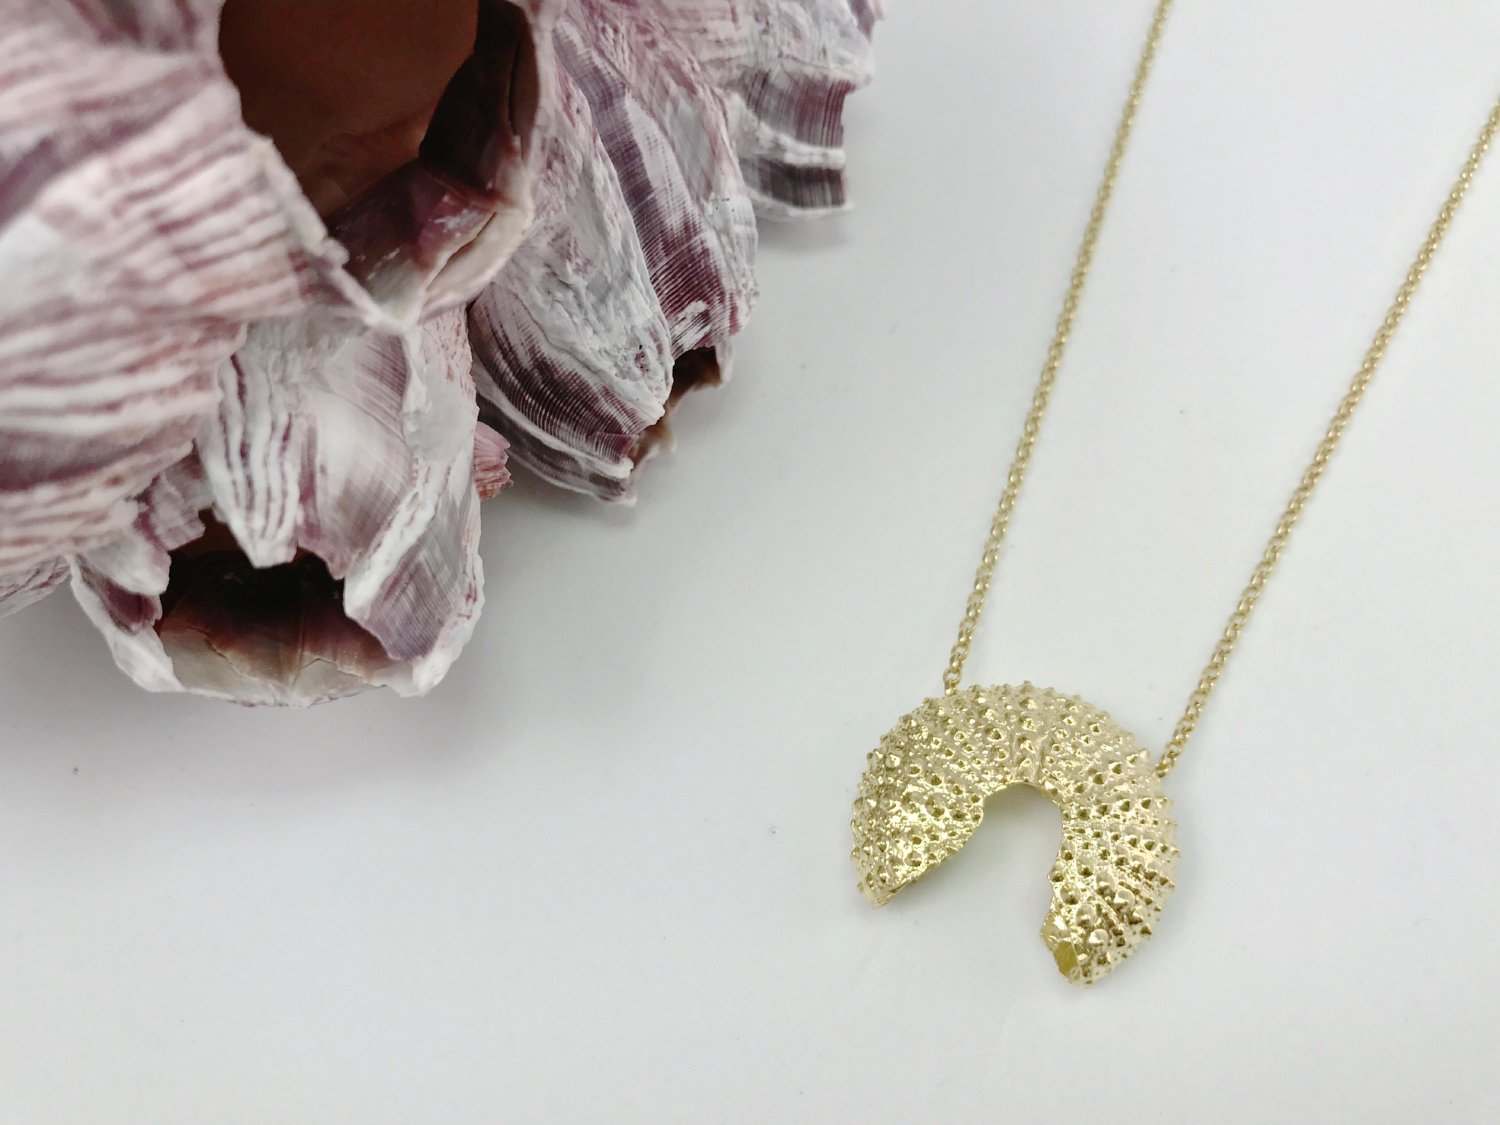 SEA URCHIN BROKEN Necklace